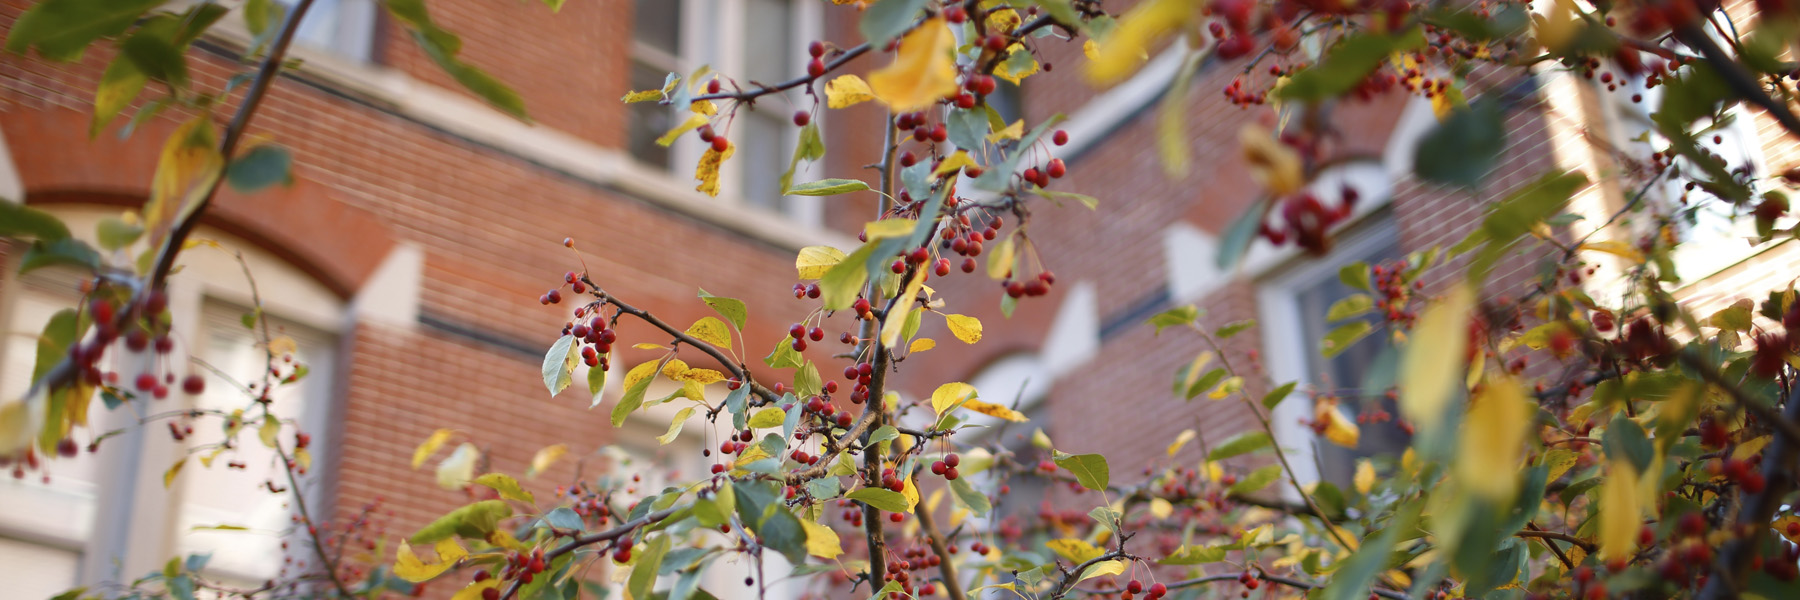 Berries outside one of the buildings on IU campus.